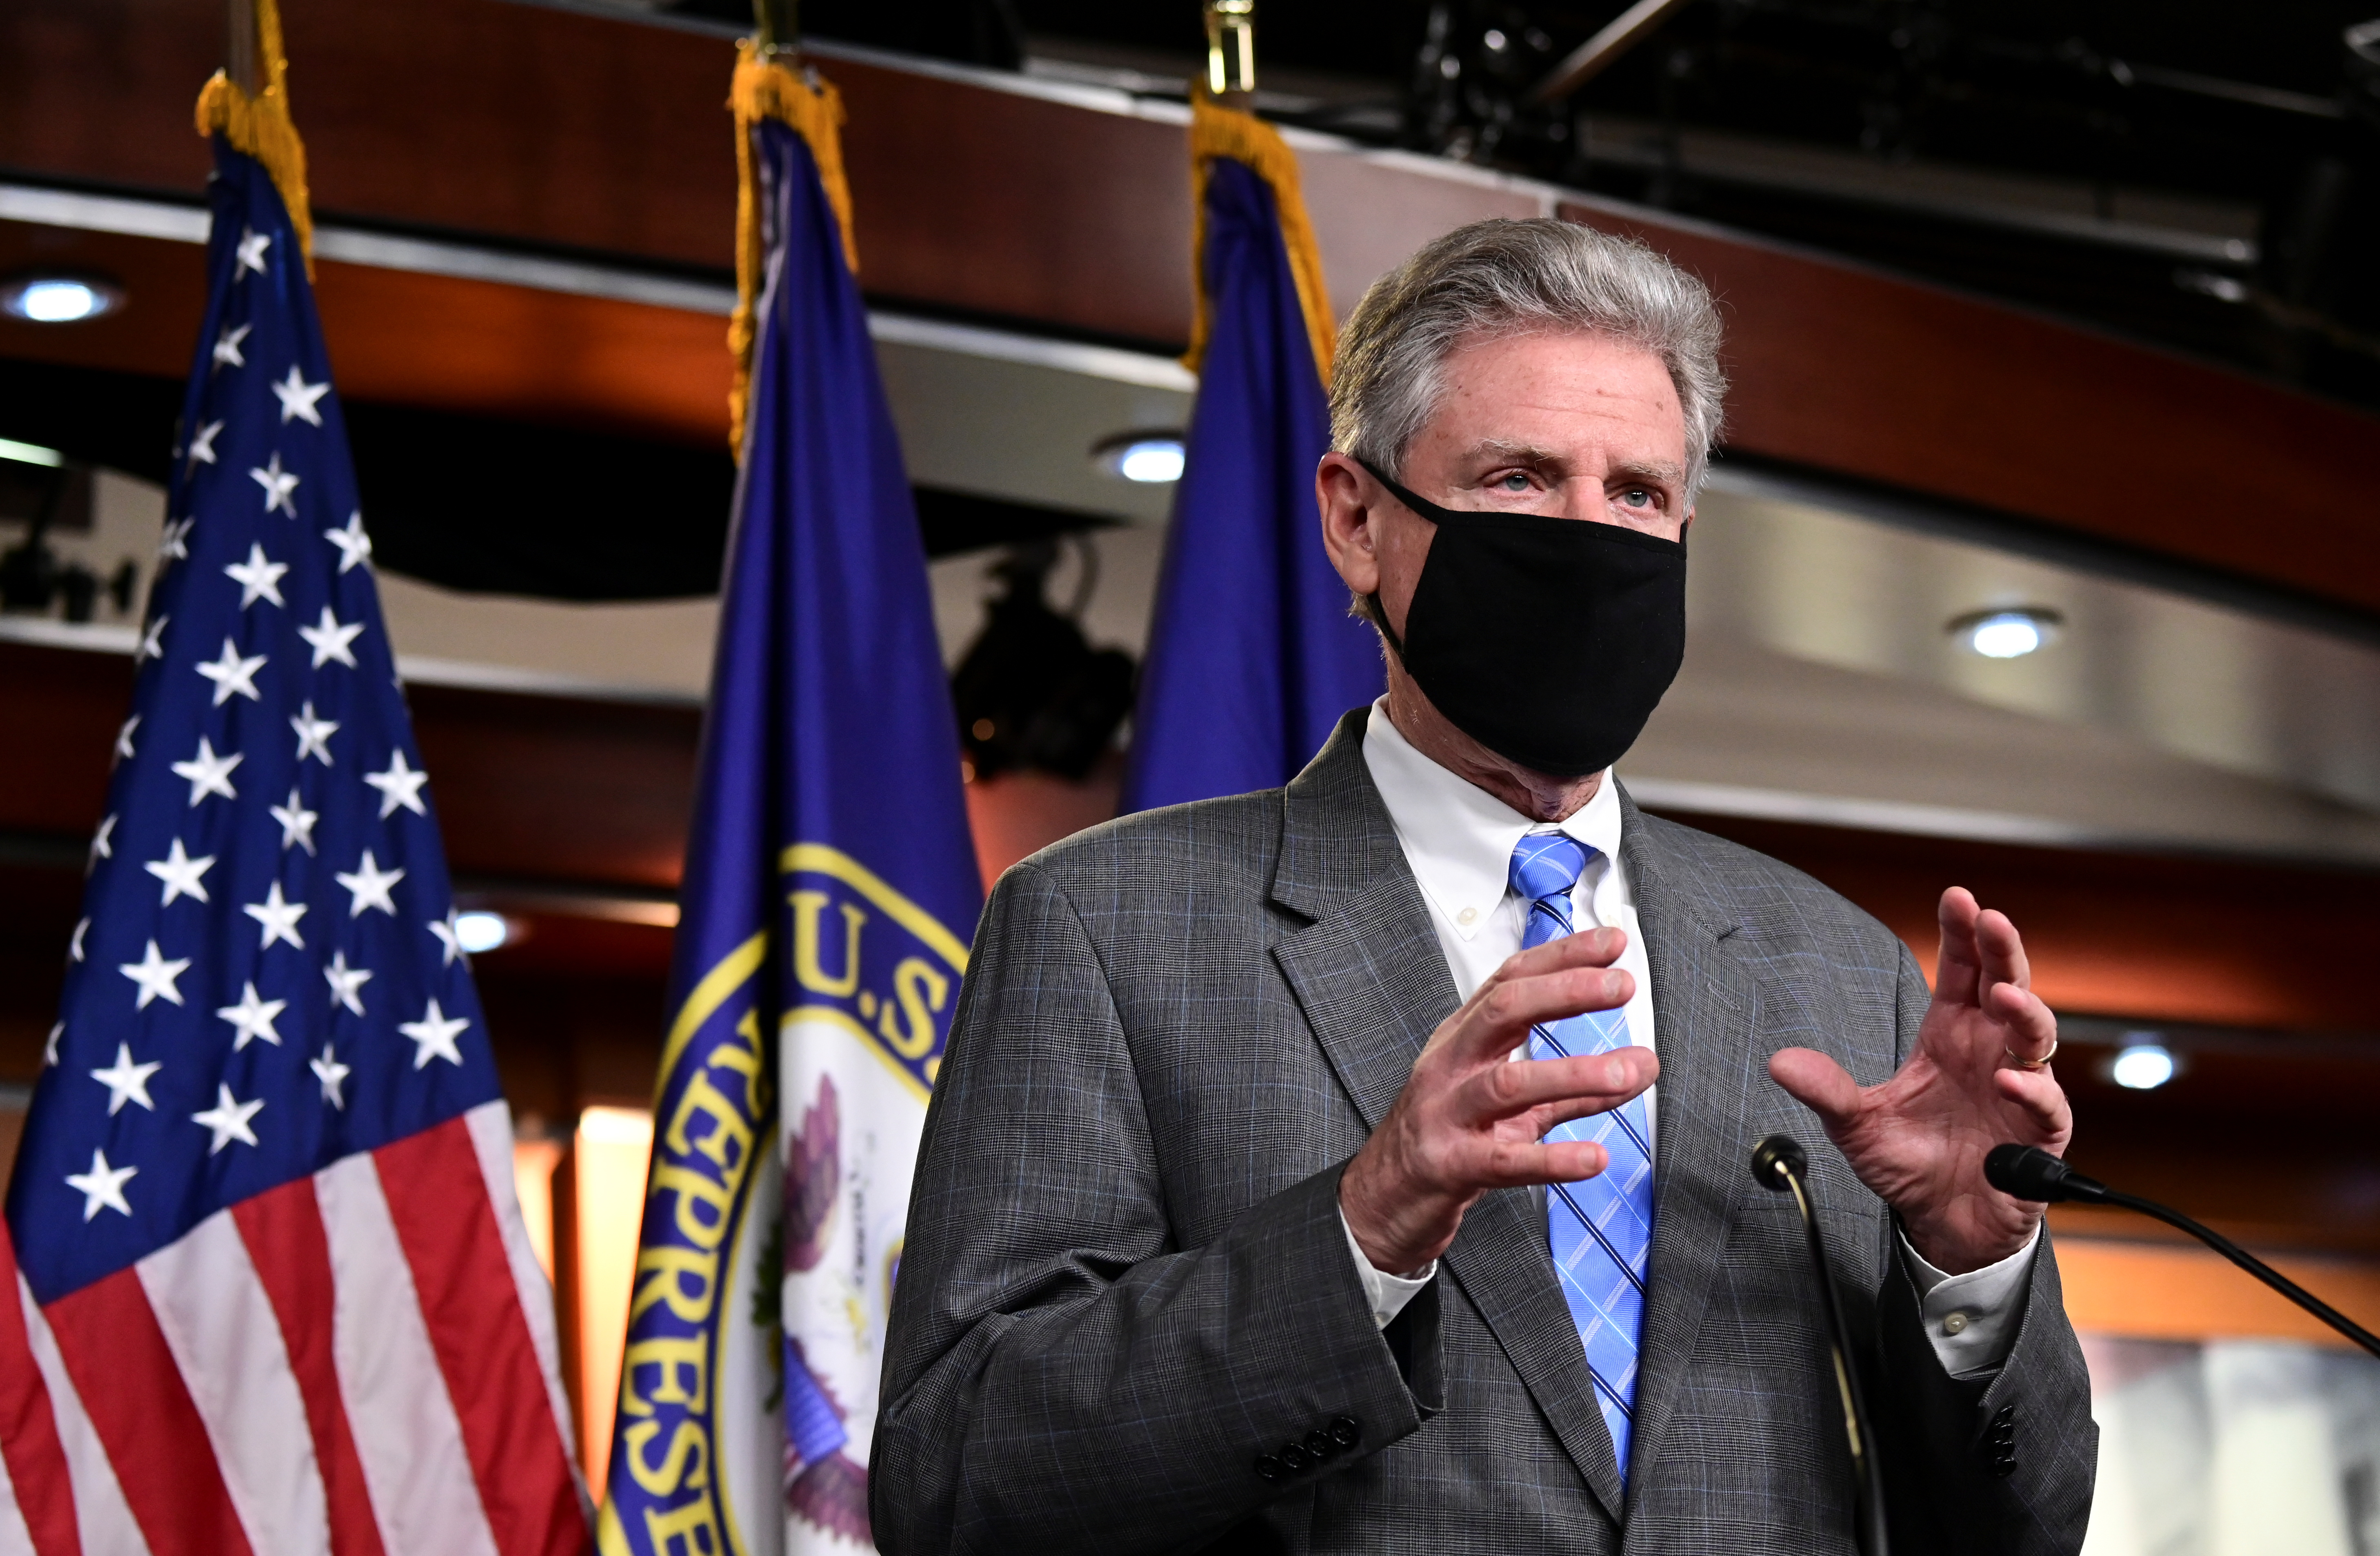 U.S. House Energy and Commerce Committee Chairman Frank Pallone (D-NJ) speaks during a news conference with fellow Democrats at the U.S. Capitol in Washington, U.S., November 6, 2020. REUTERS/Erin Scott